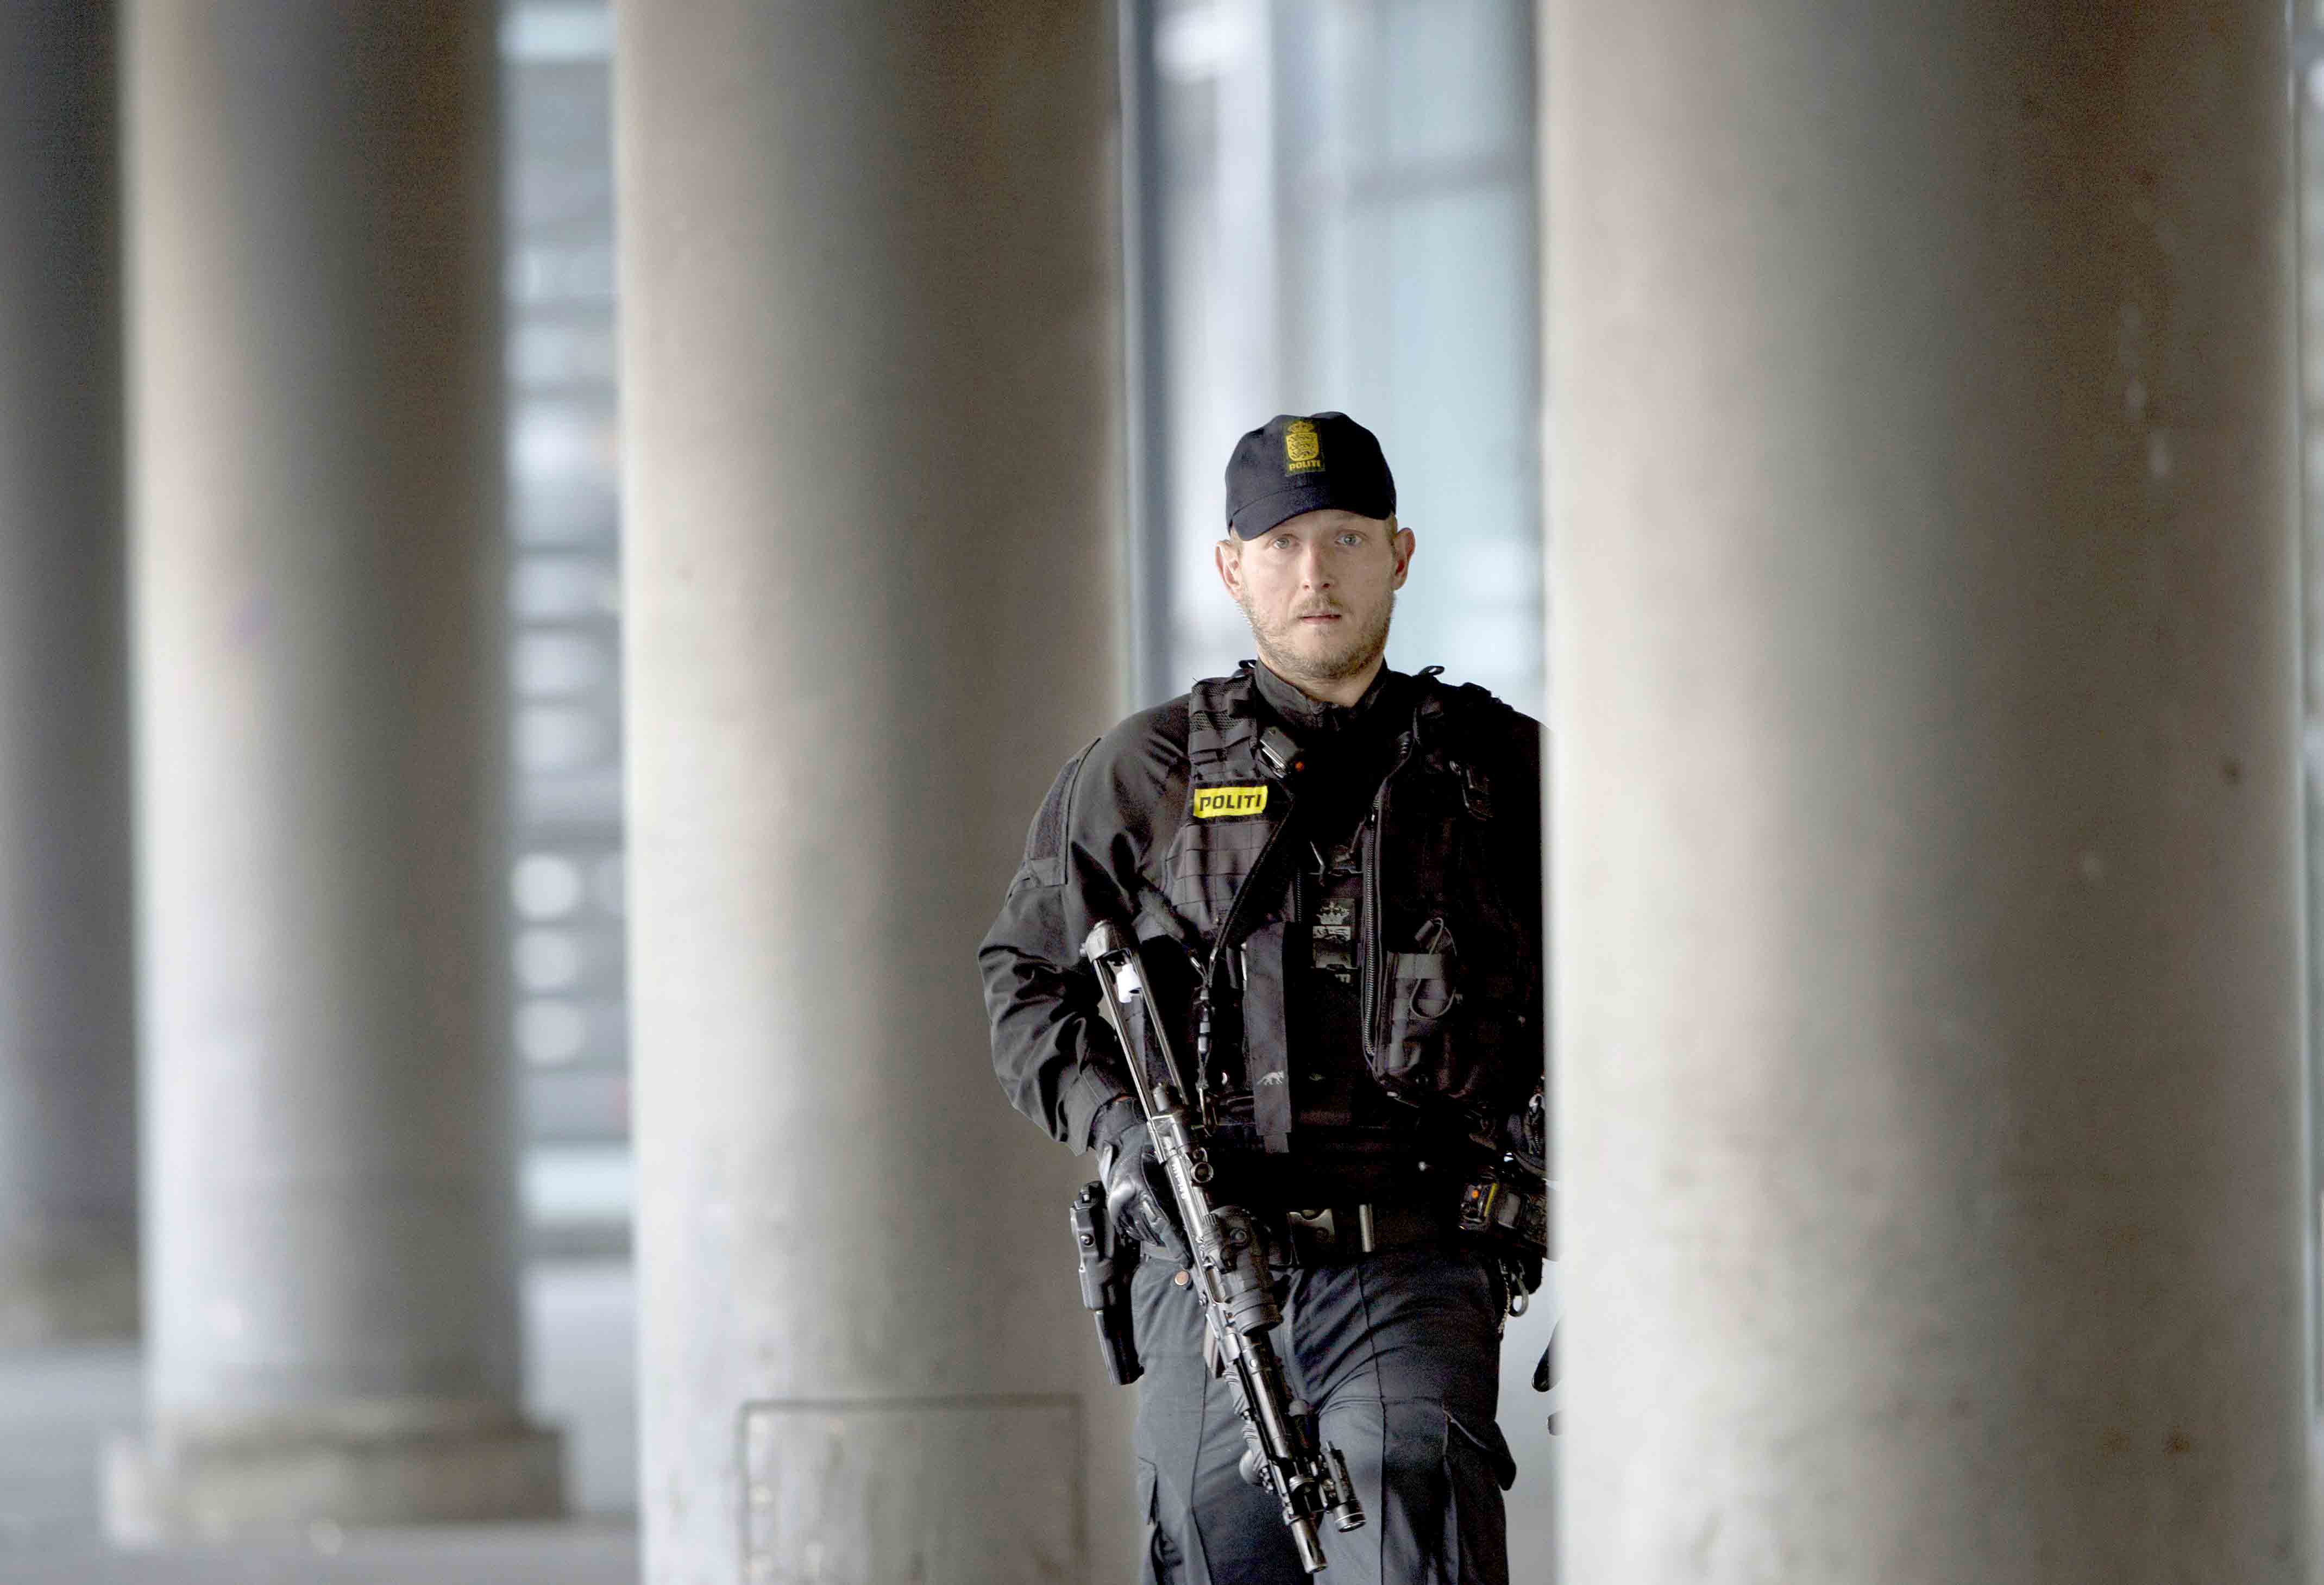 A Danish policeman stands guard outside a building in Copenhagen. (AFP)